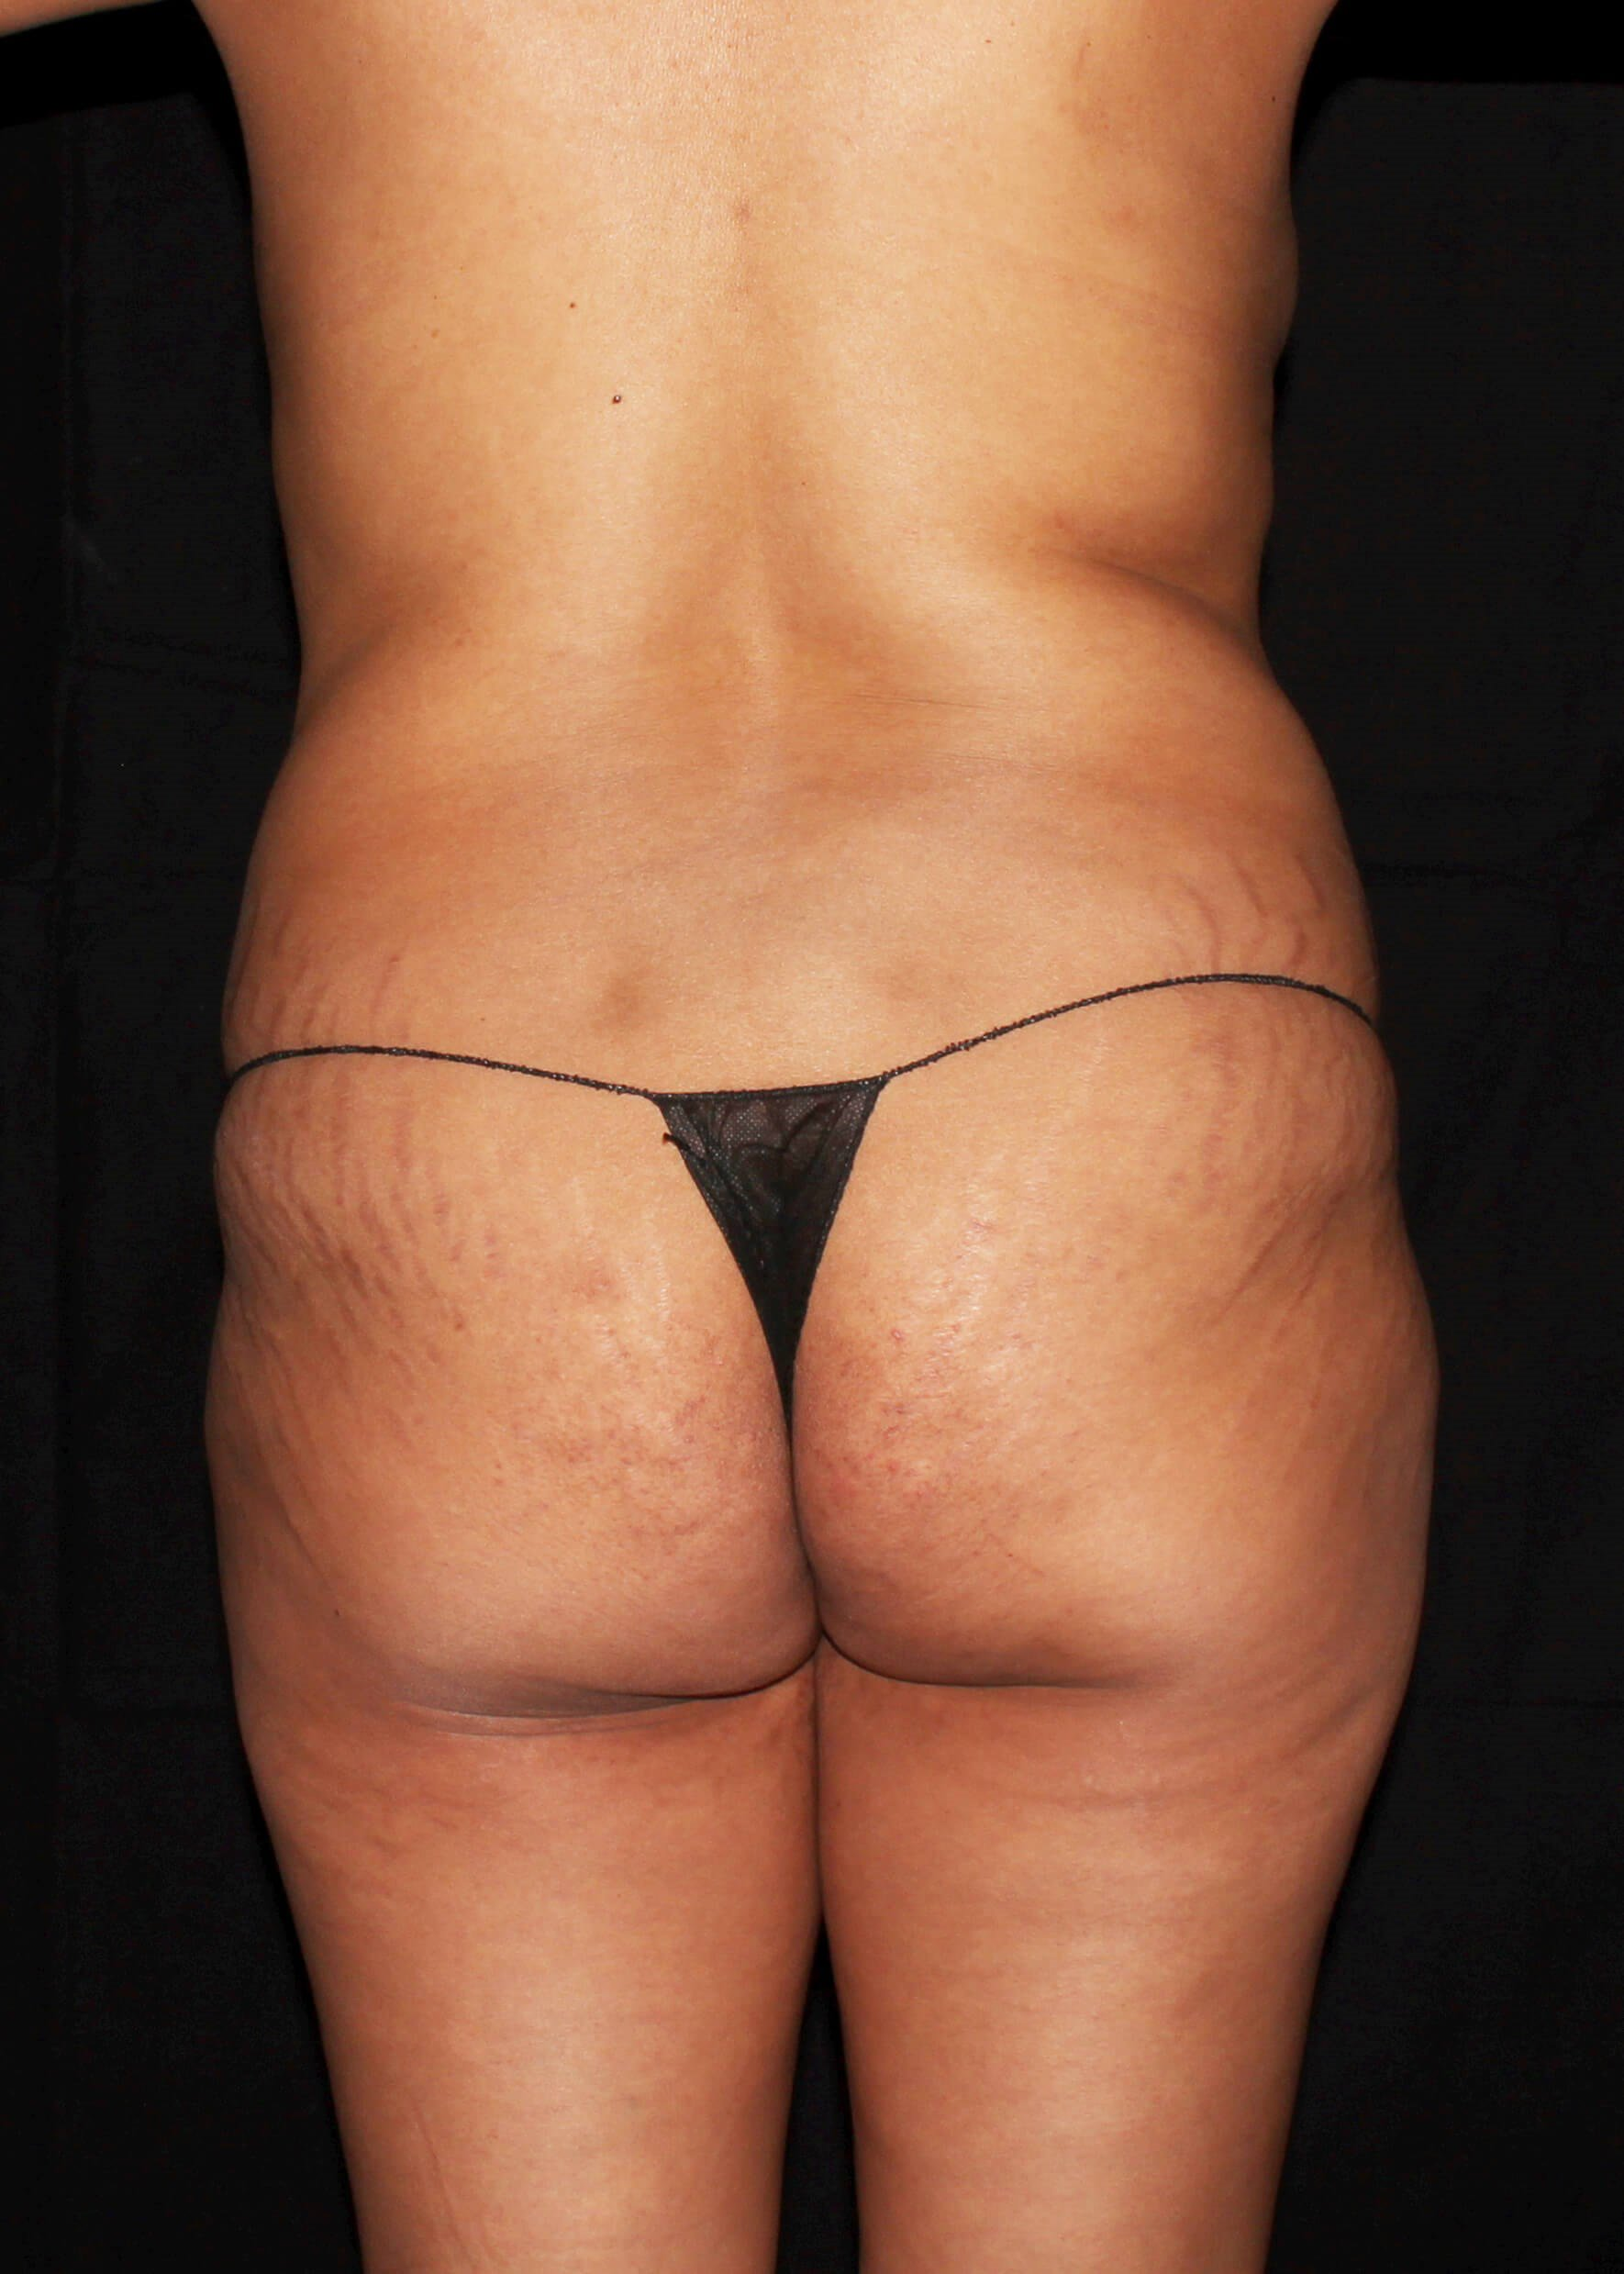 Breast Augmentation and Mommy Makeover Before - Back View